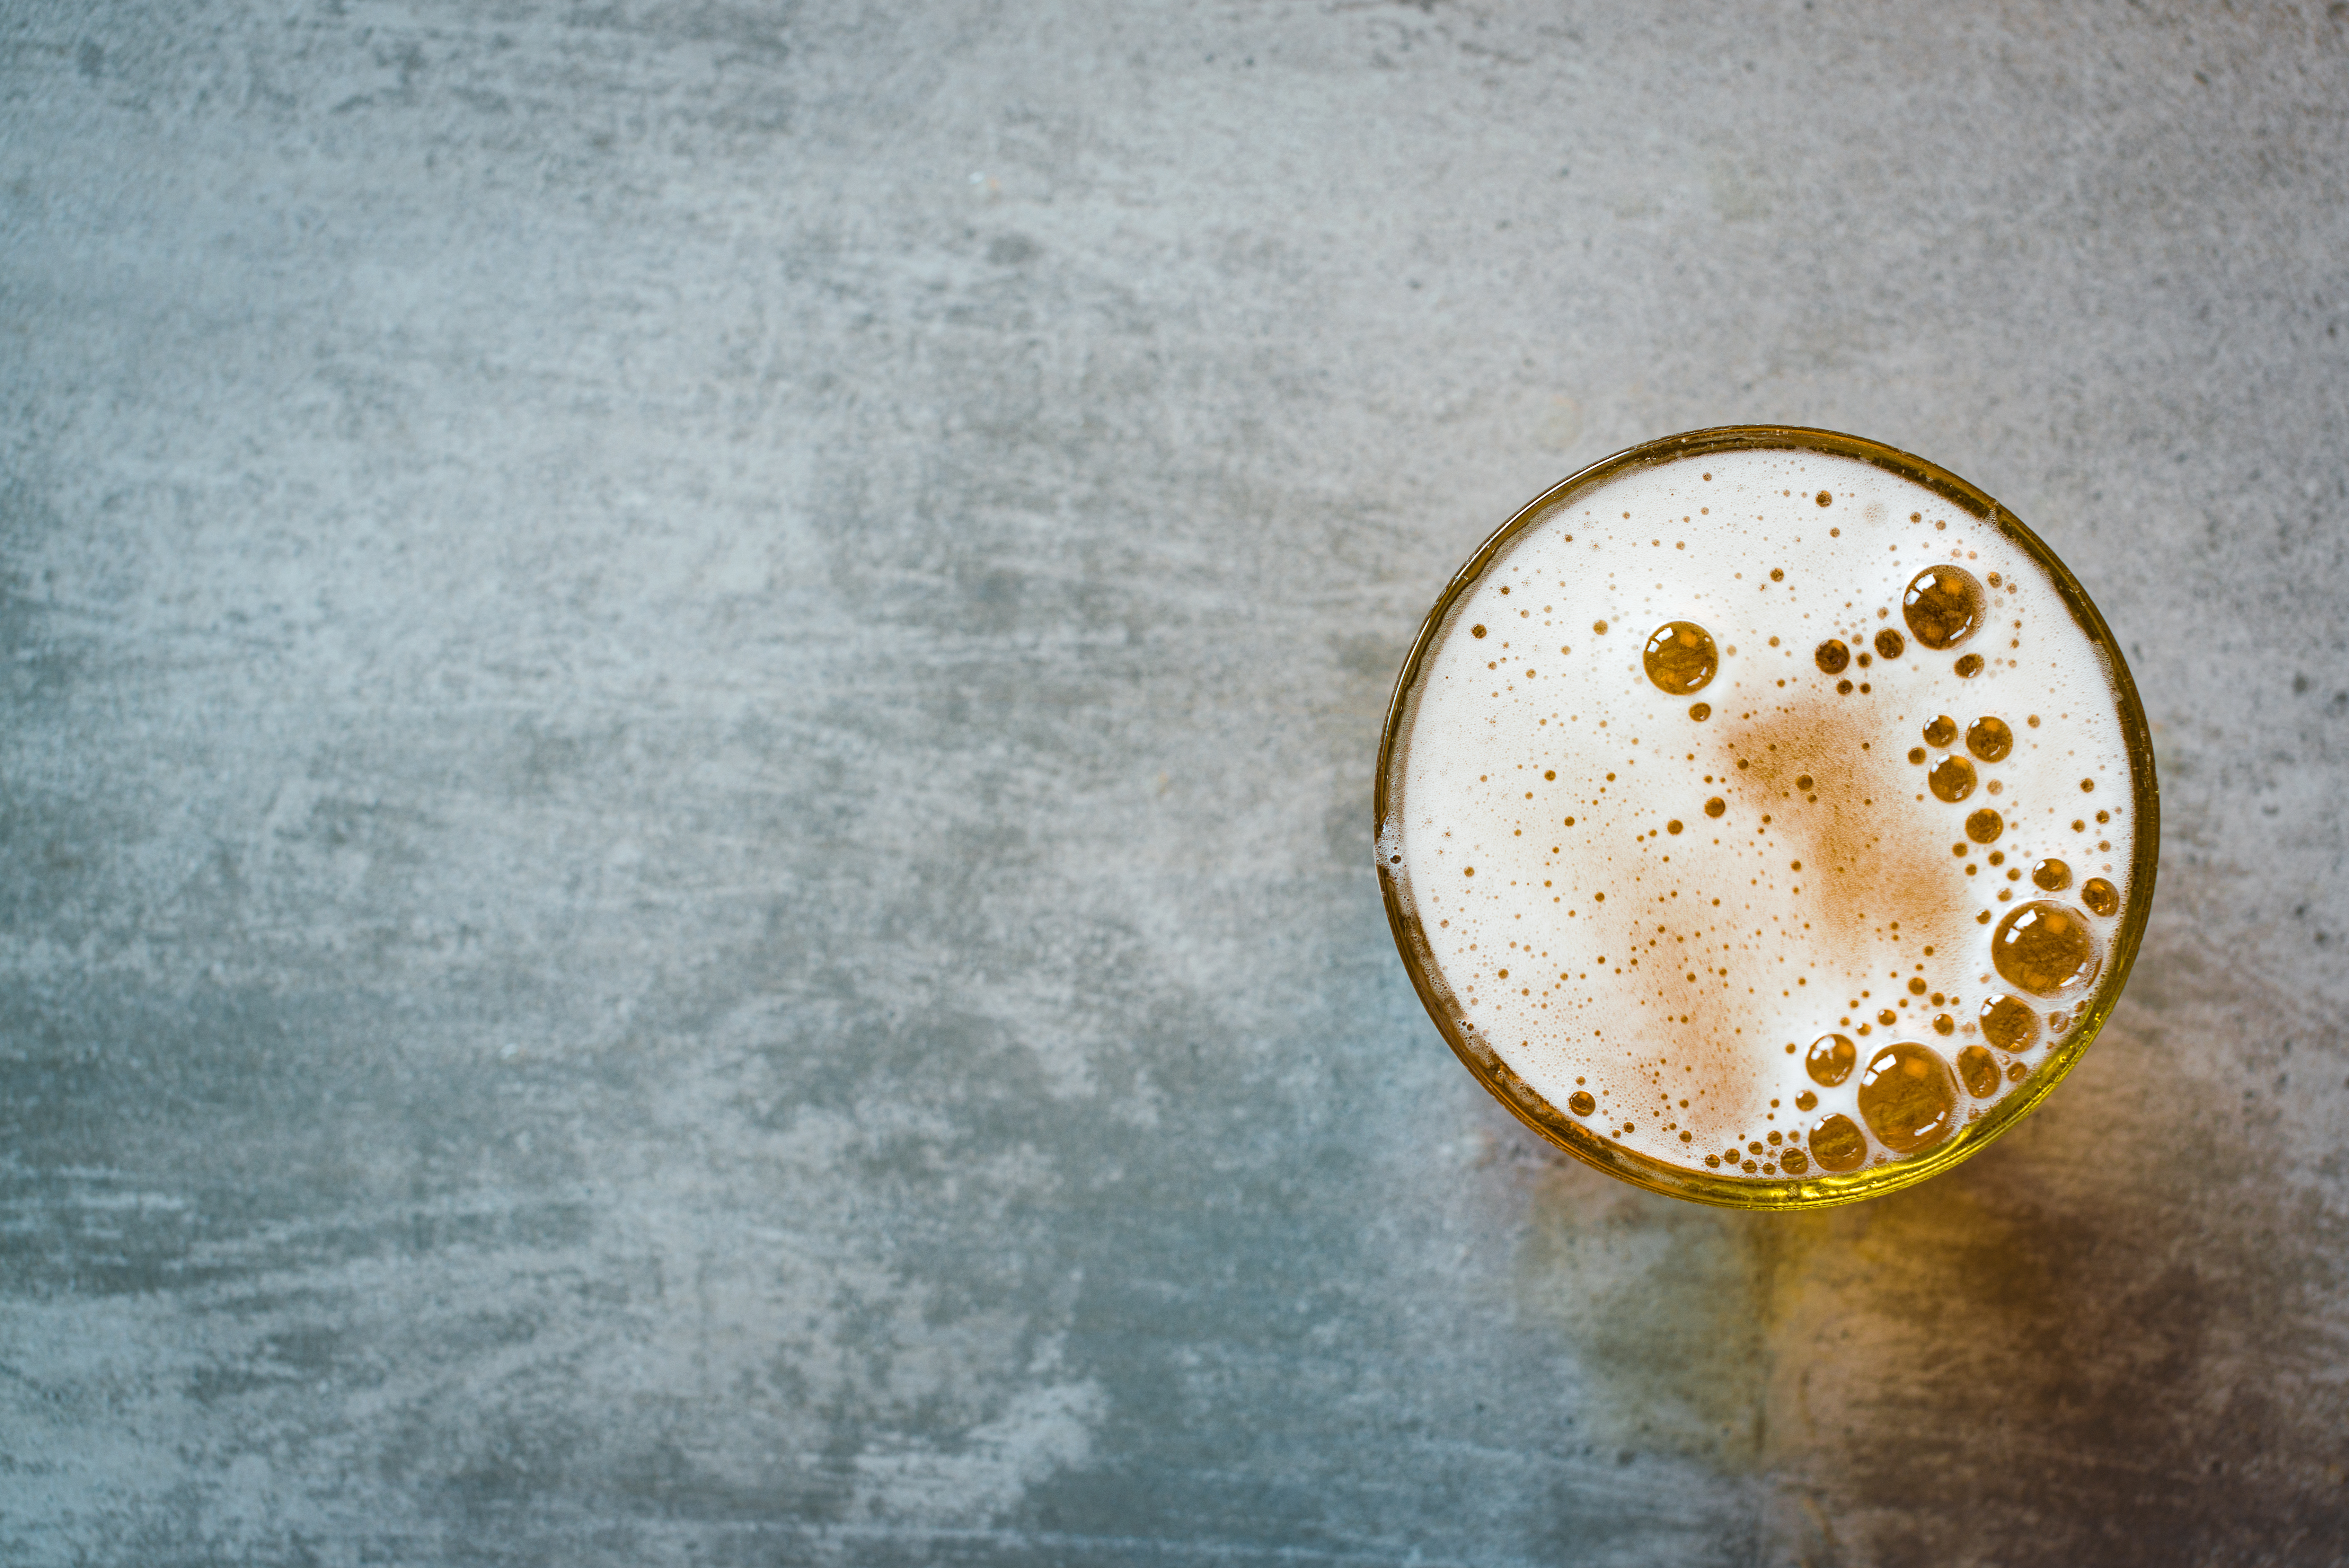 What Alcoholic Drinks Have the Least Amount of Calories